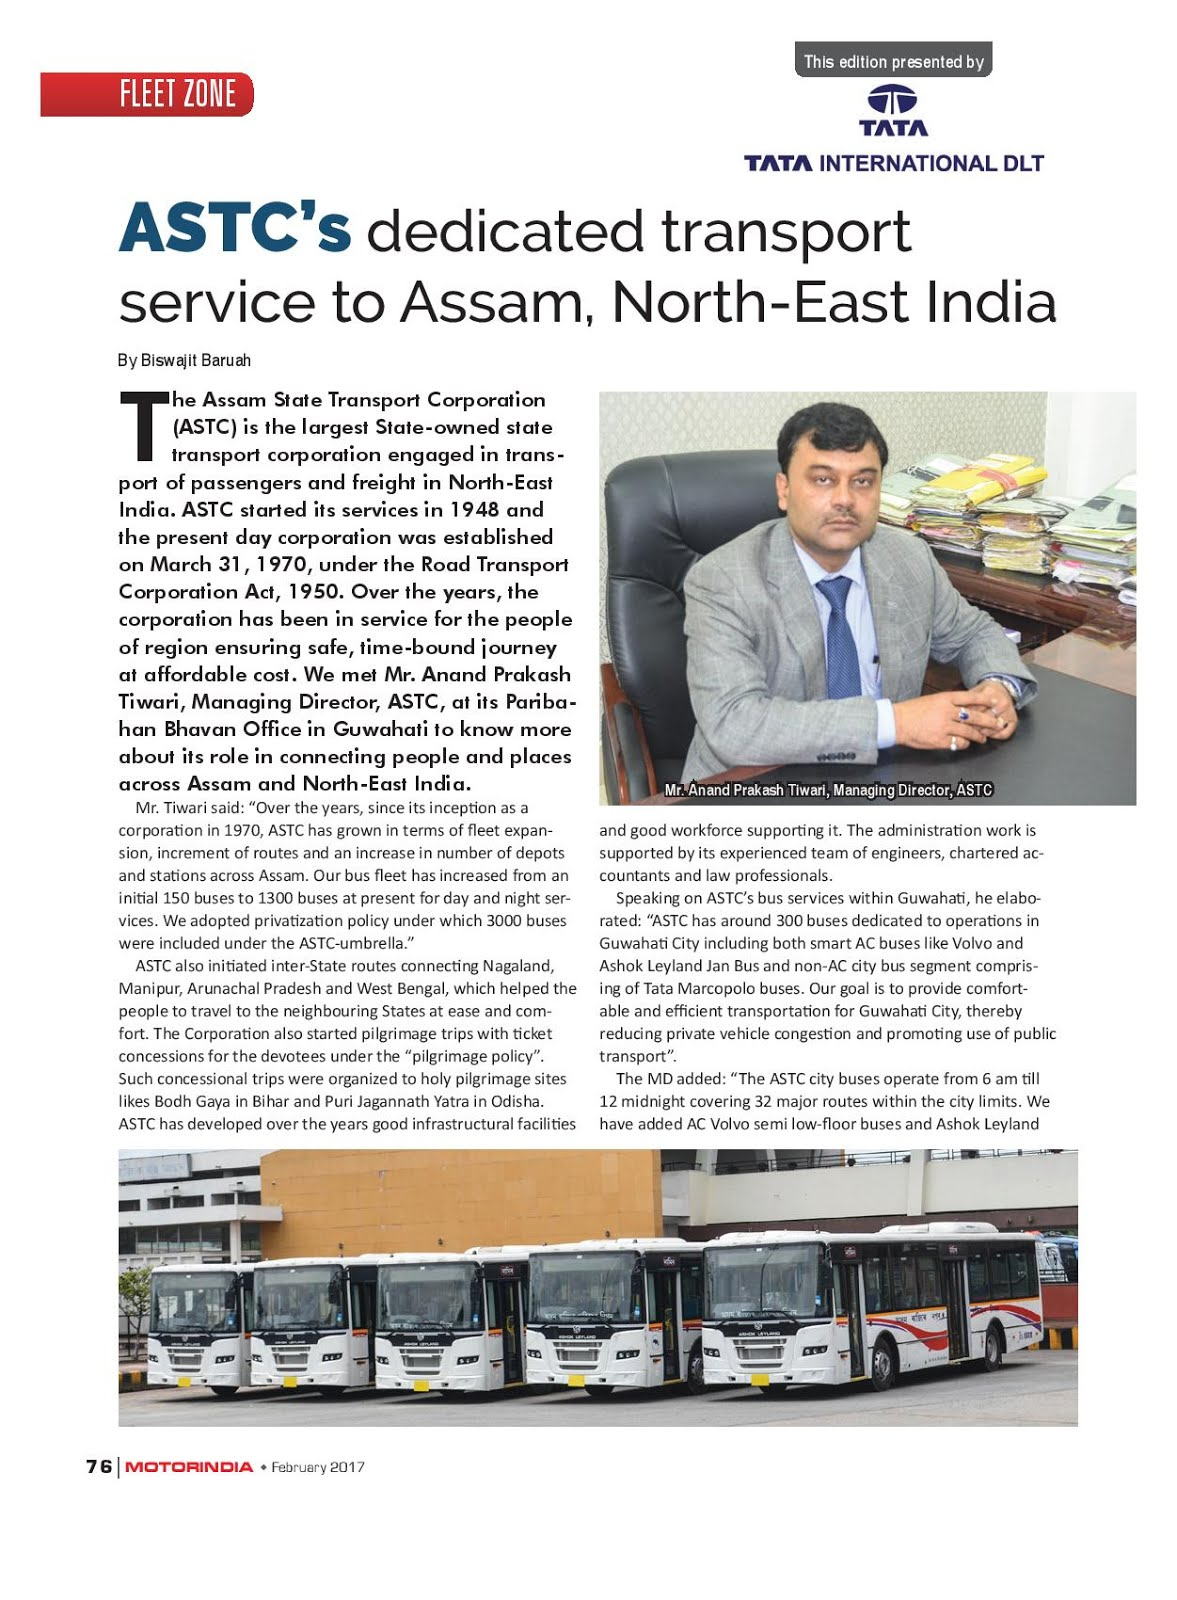 MOTOR INDIA ARTICLE 10 : ASSAM STATE TRANSPORT CORPORATION